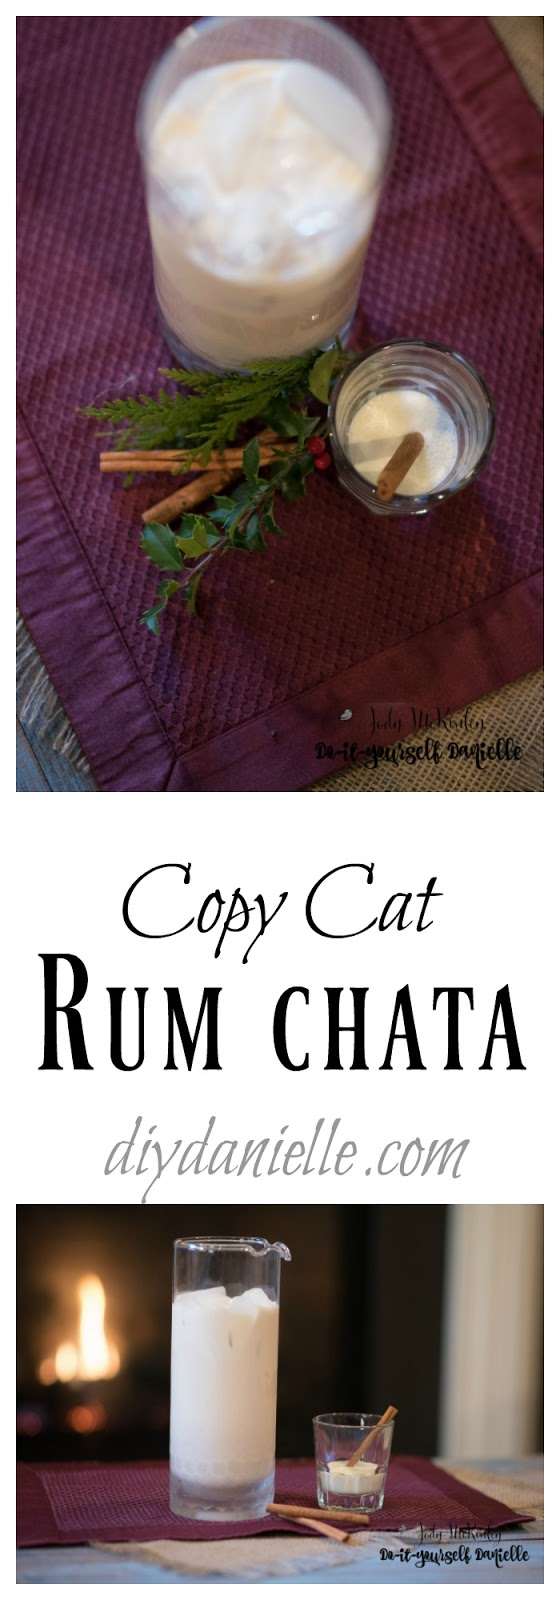 Recipe for Copy Cat Rum Chata